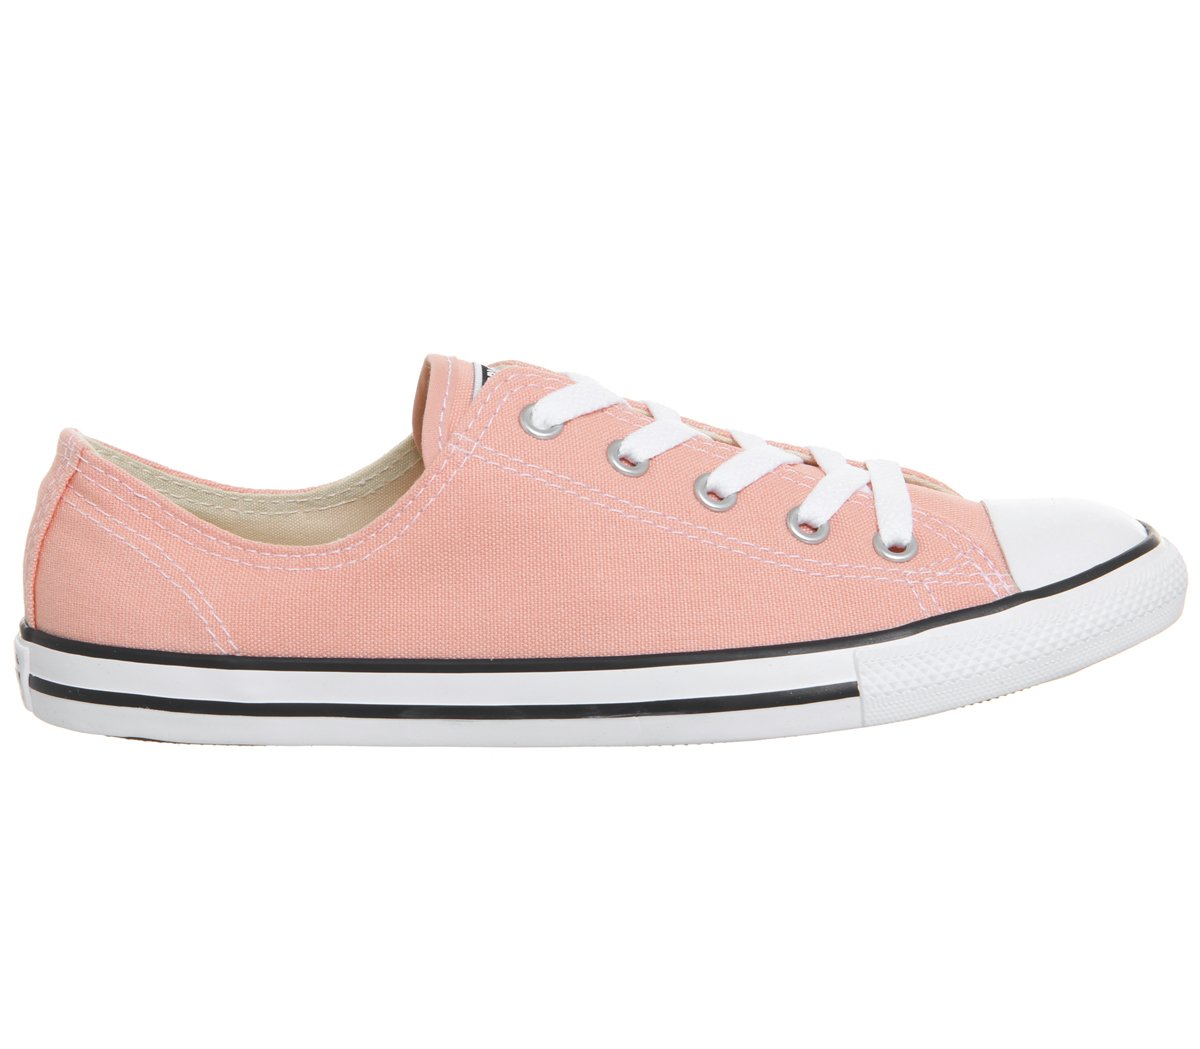 Converse Damen Chuck Taylor CTAS Dainty OX Canvas Fitnessschuhe  35.5 EU|Orange (Pale Coral/White/Black 689)